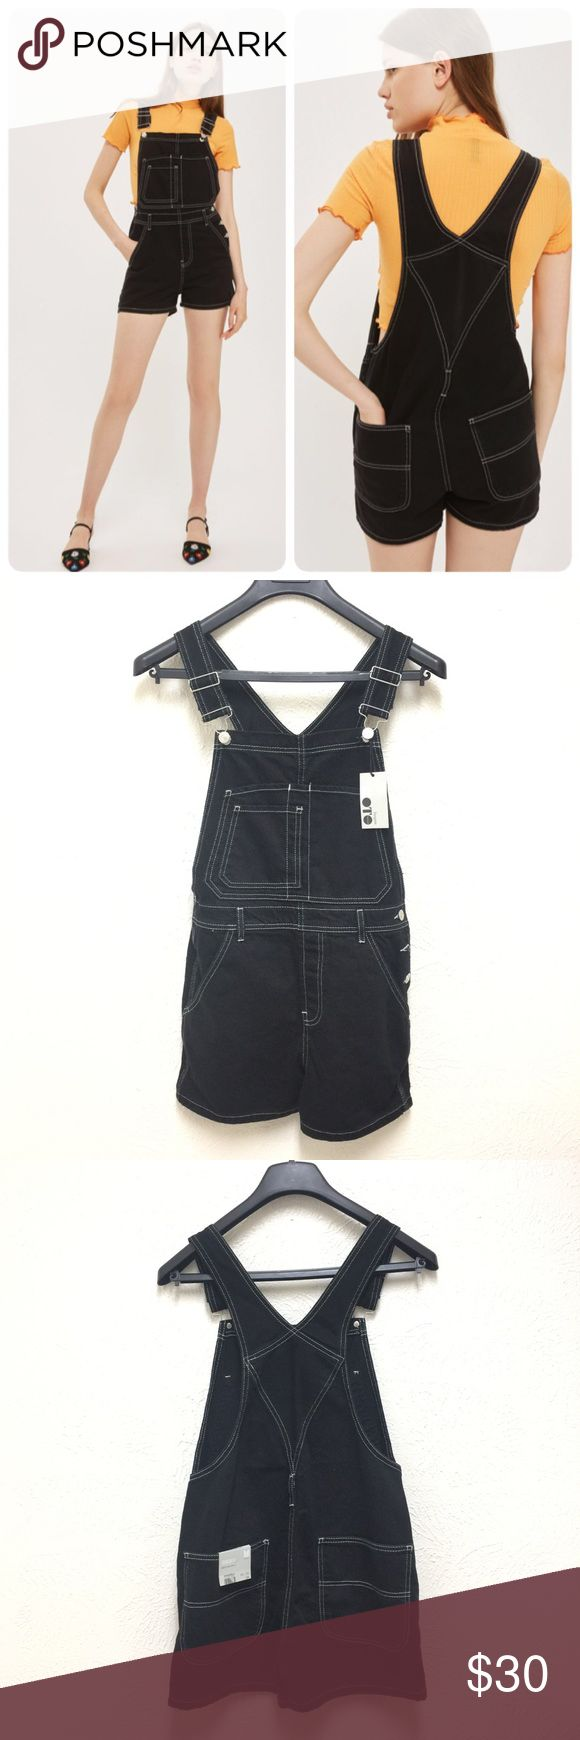 Topshop Contrast Stitch Short Overalls Size 6 New with tag.  US Size 6 Retail: $75 plus tax  ❌NO trade ❌Lowball Offer Will be IGNORED&BLOCKED.  ⚡️Serious Buyer ONLY⚡️NO DRAMA! ⭐️Same/next day shipping via USPS ⚠I video record all sales from packing to shipping so we are both protected ⚠ Topshop Jeans Overalls